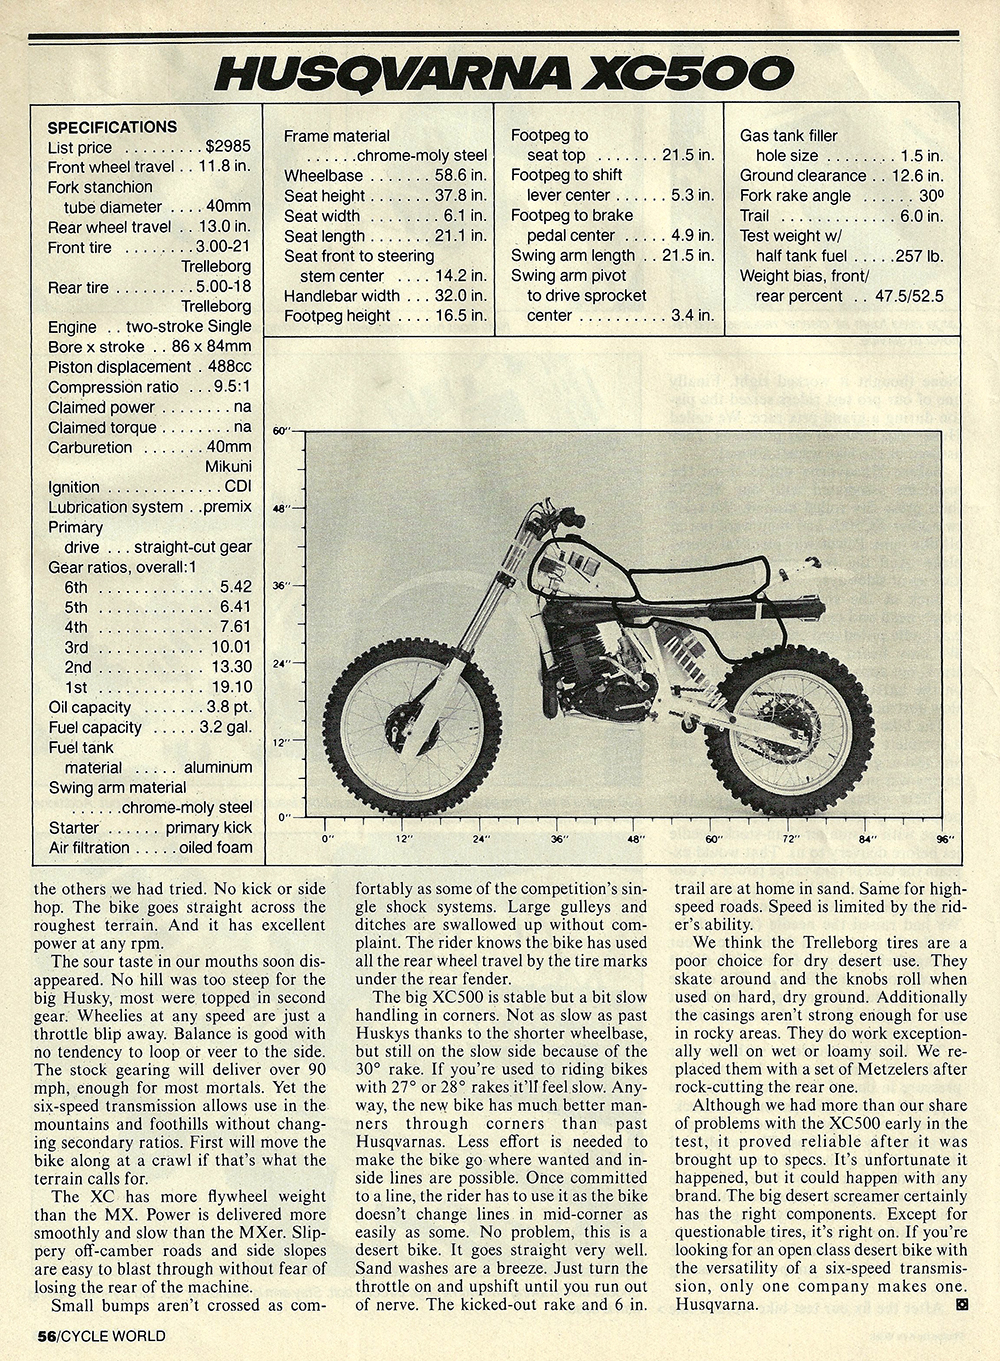 1983 Husqvarna XC500 road test 05.jpg